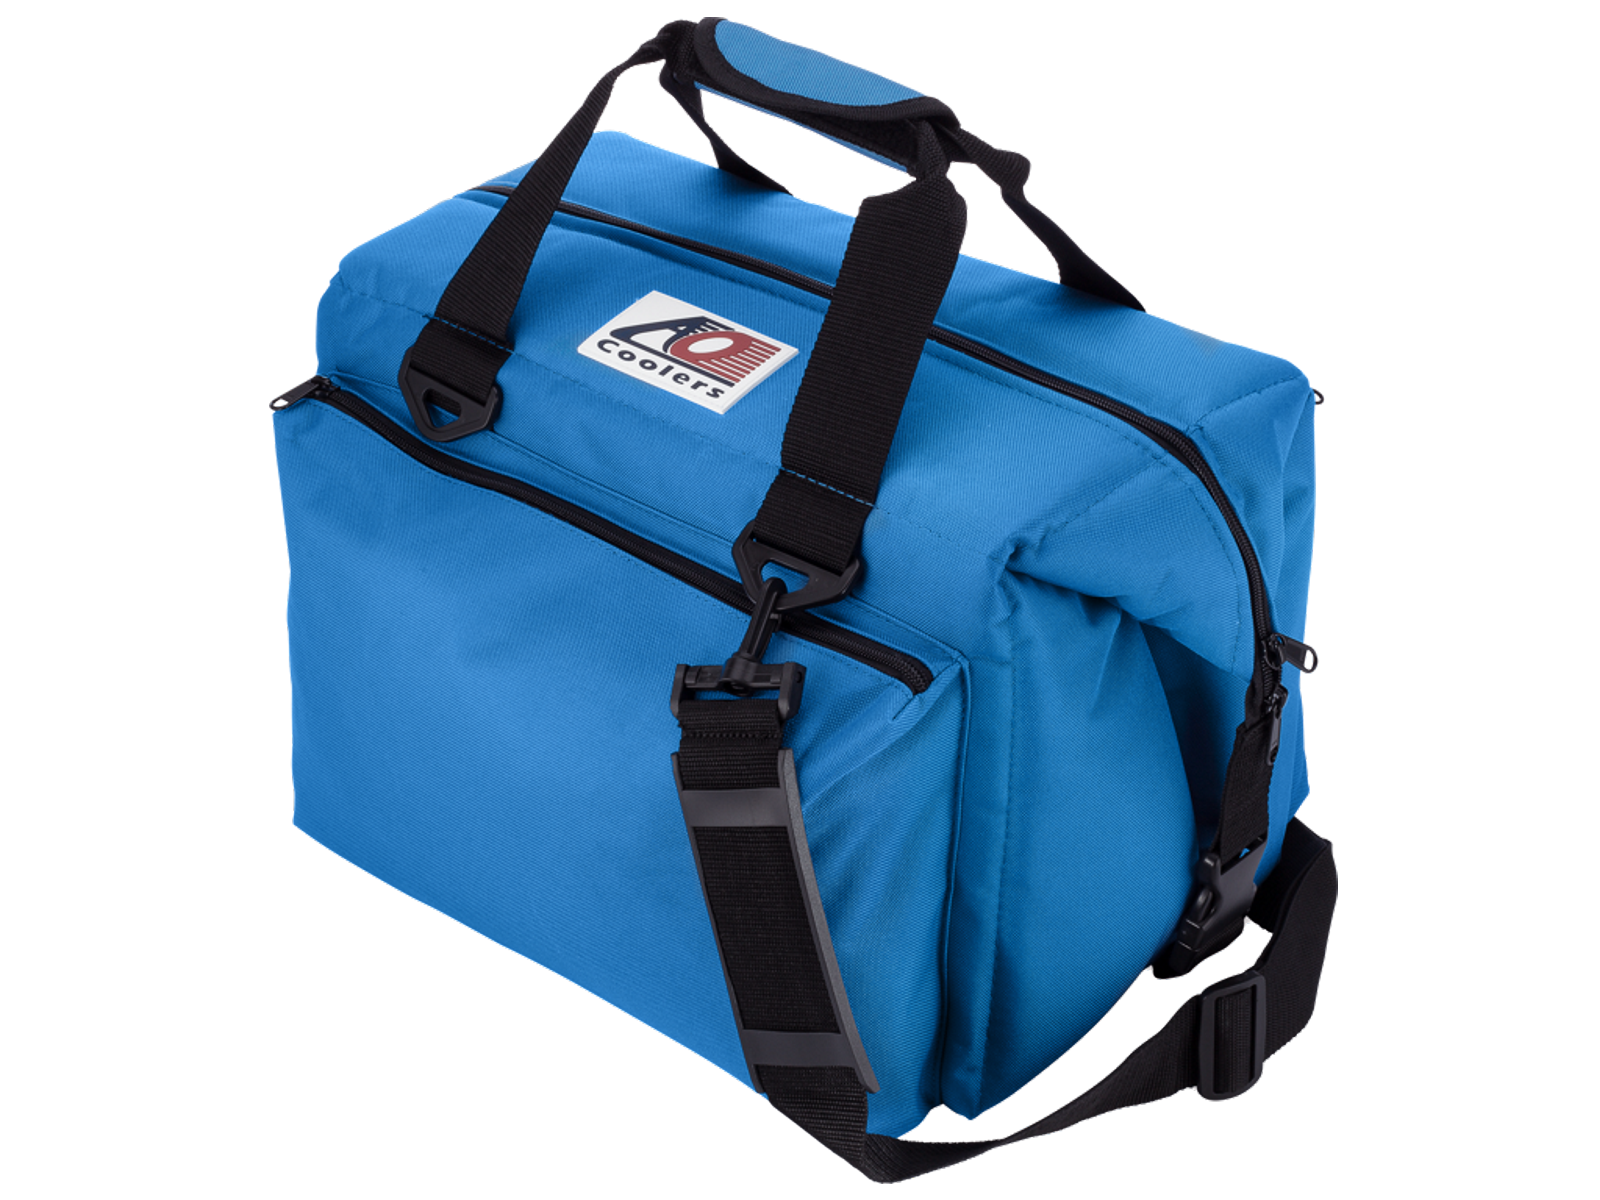 9c1ce7844 AO Cooler Bag / Portable Rinse Tank - 24 pack DELUXE - Bluewater Photo